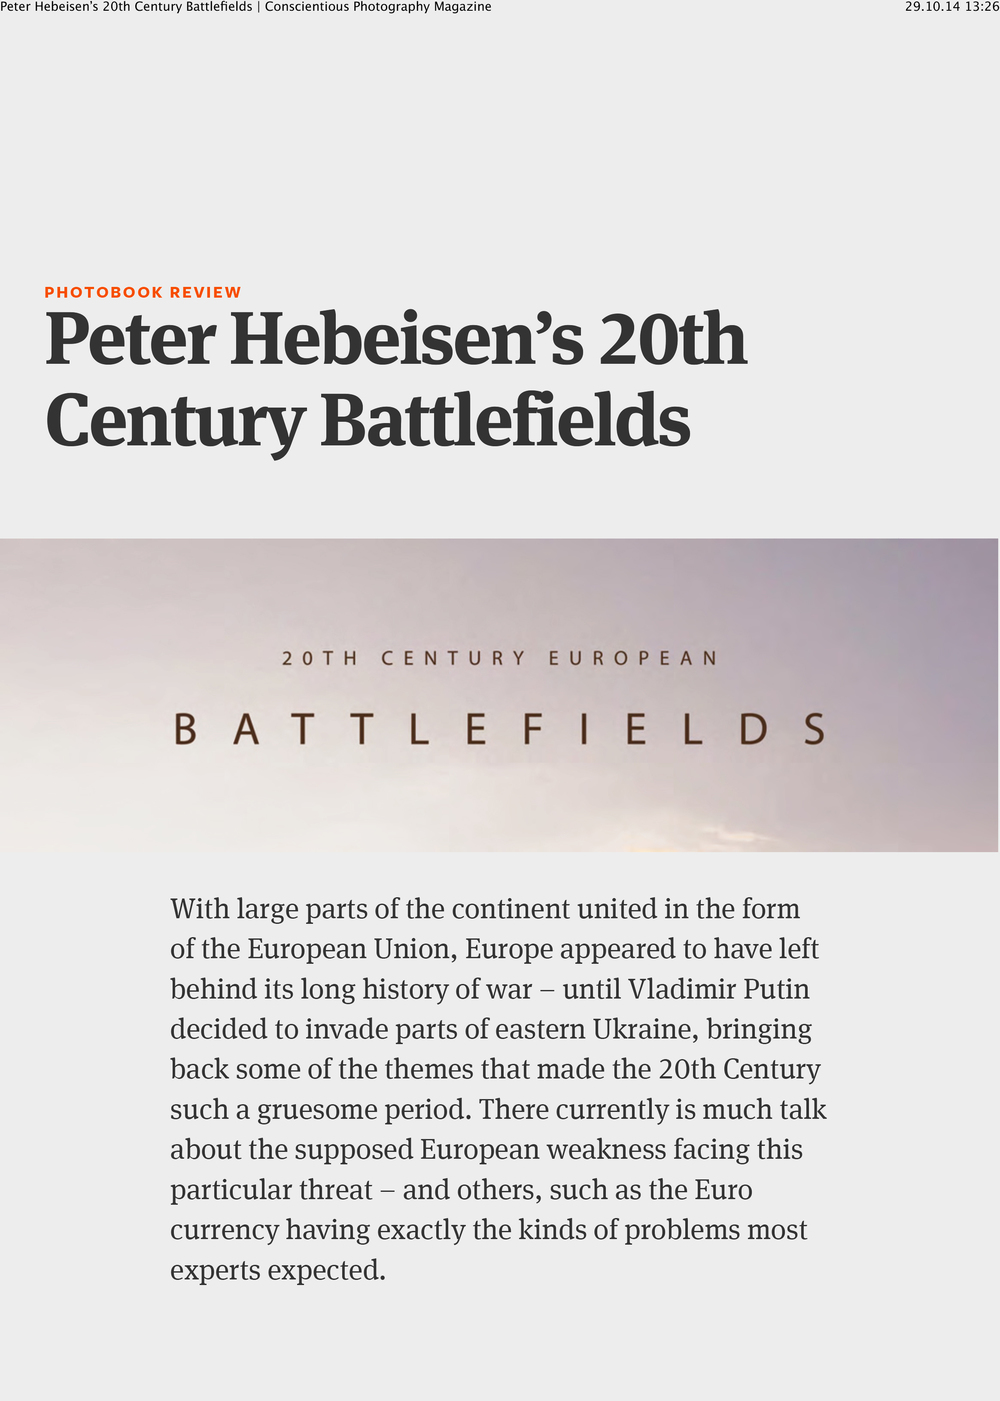 Peter Hebeisen's 20th Century Battlefields Conscientious Photography Magazine-1.jpg